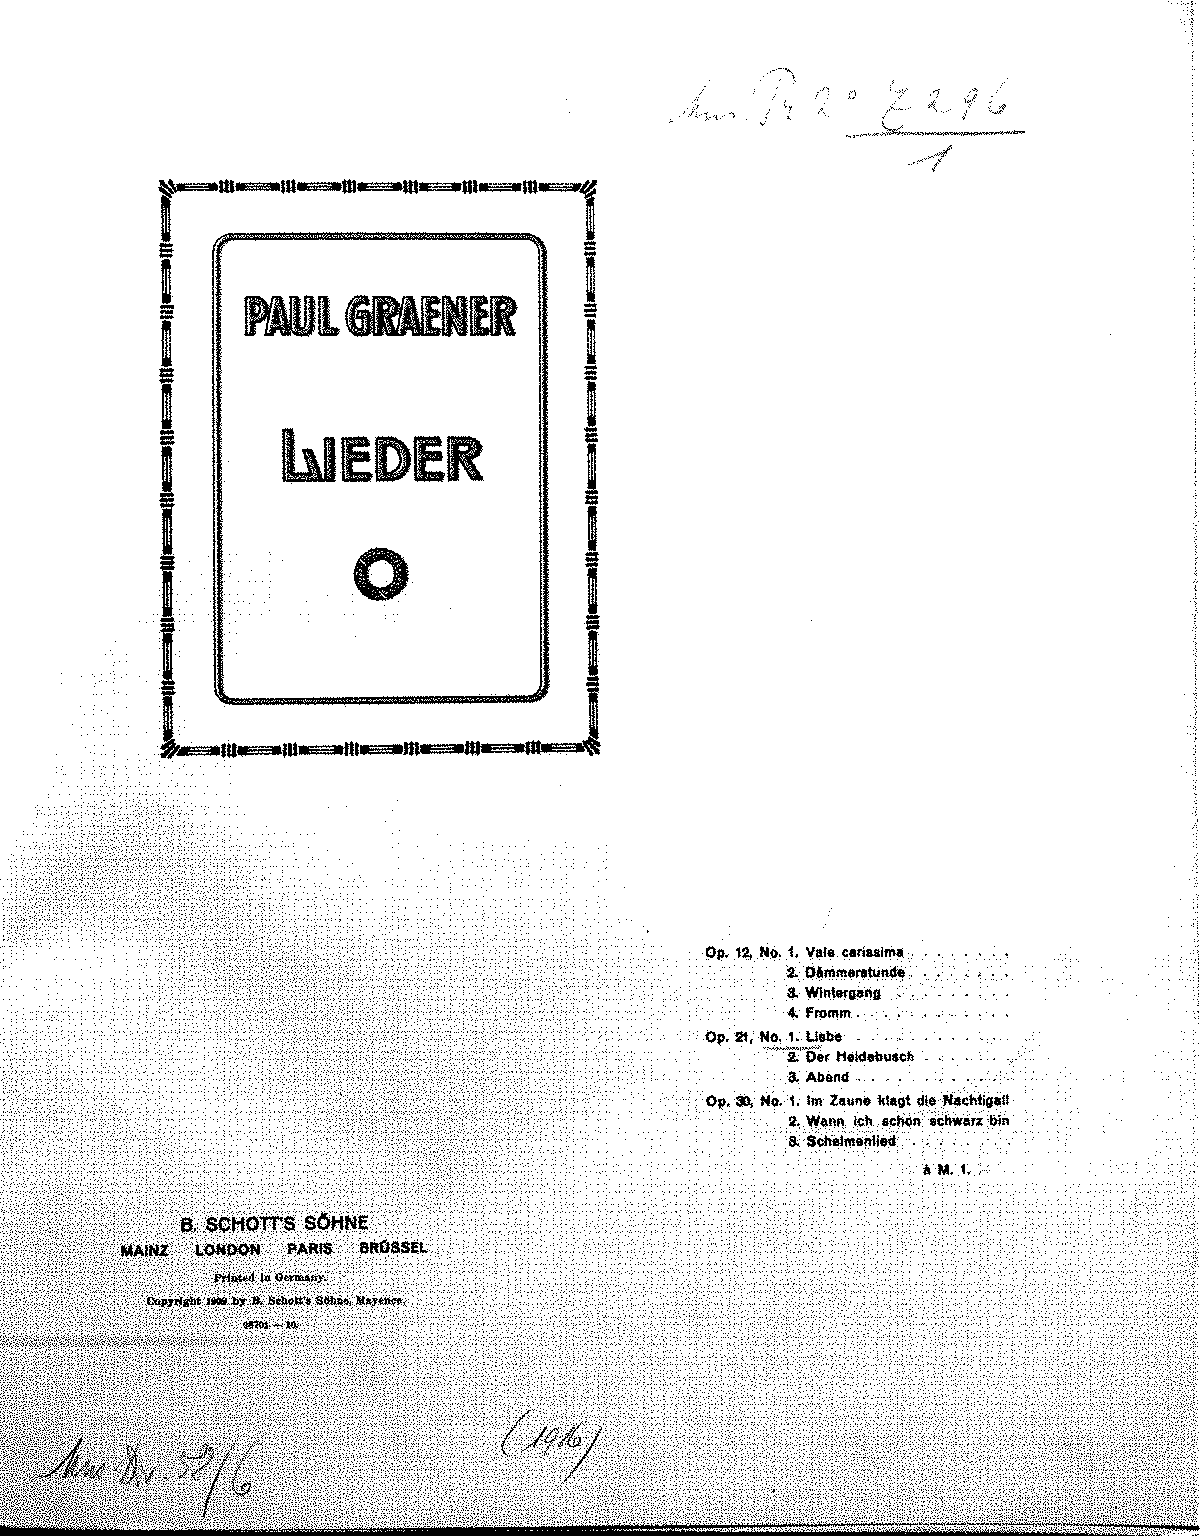 PMLP428406-Graener 3 Lieder Opus 21 originals FOR UPLOAD.pdf